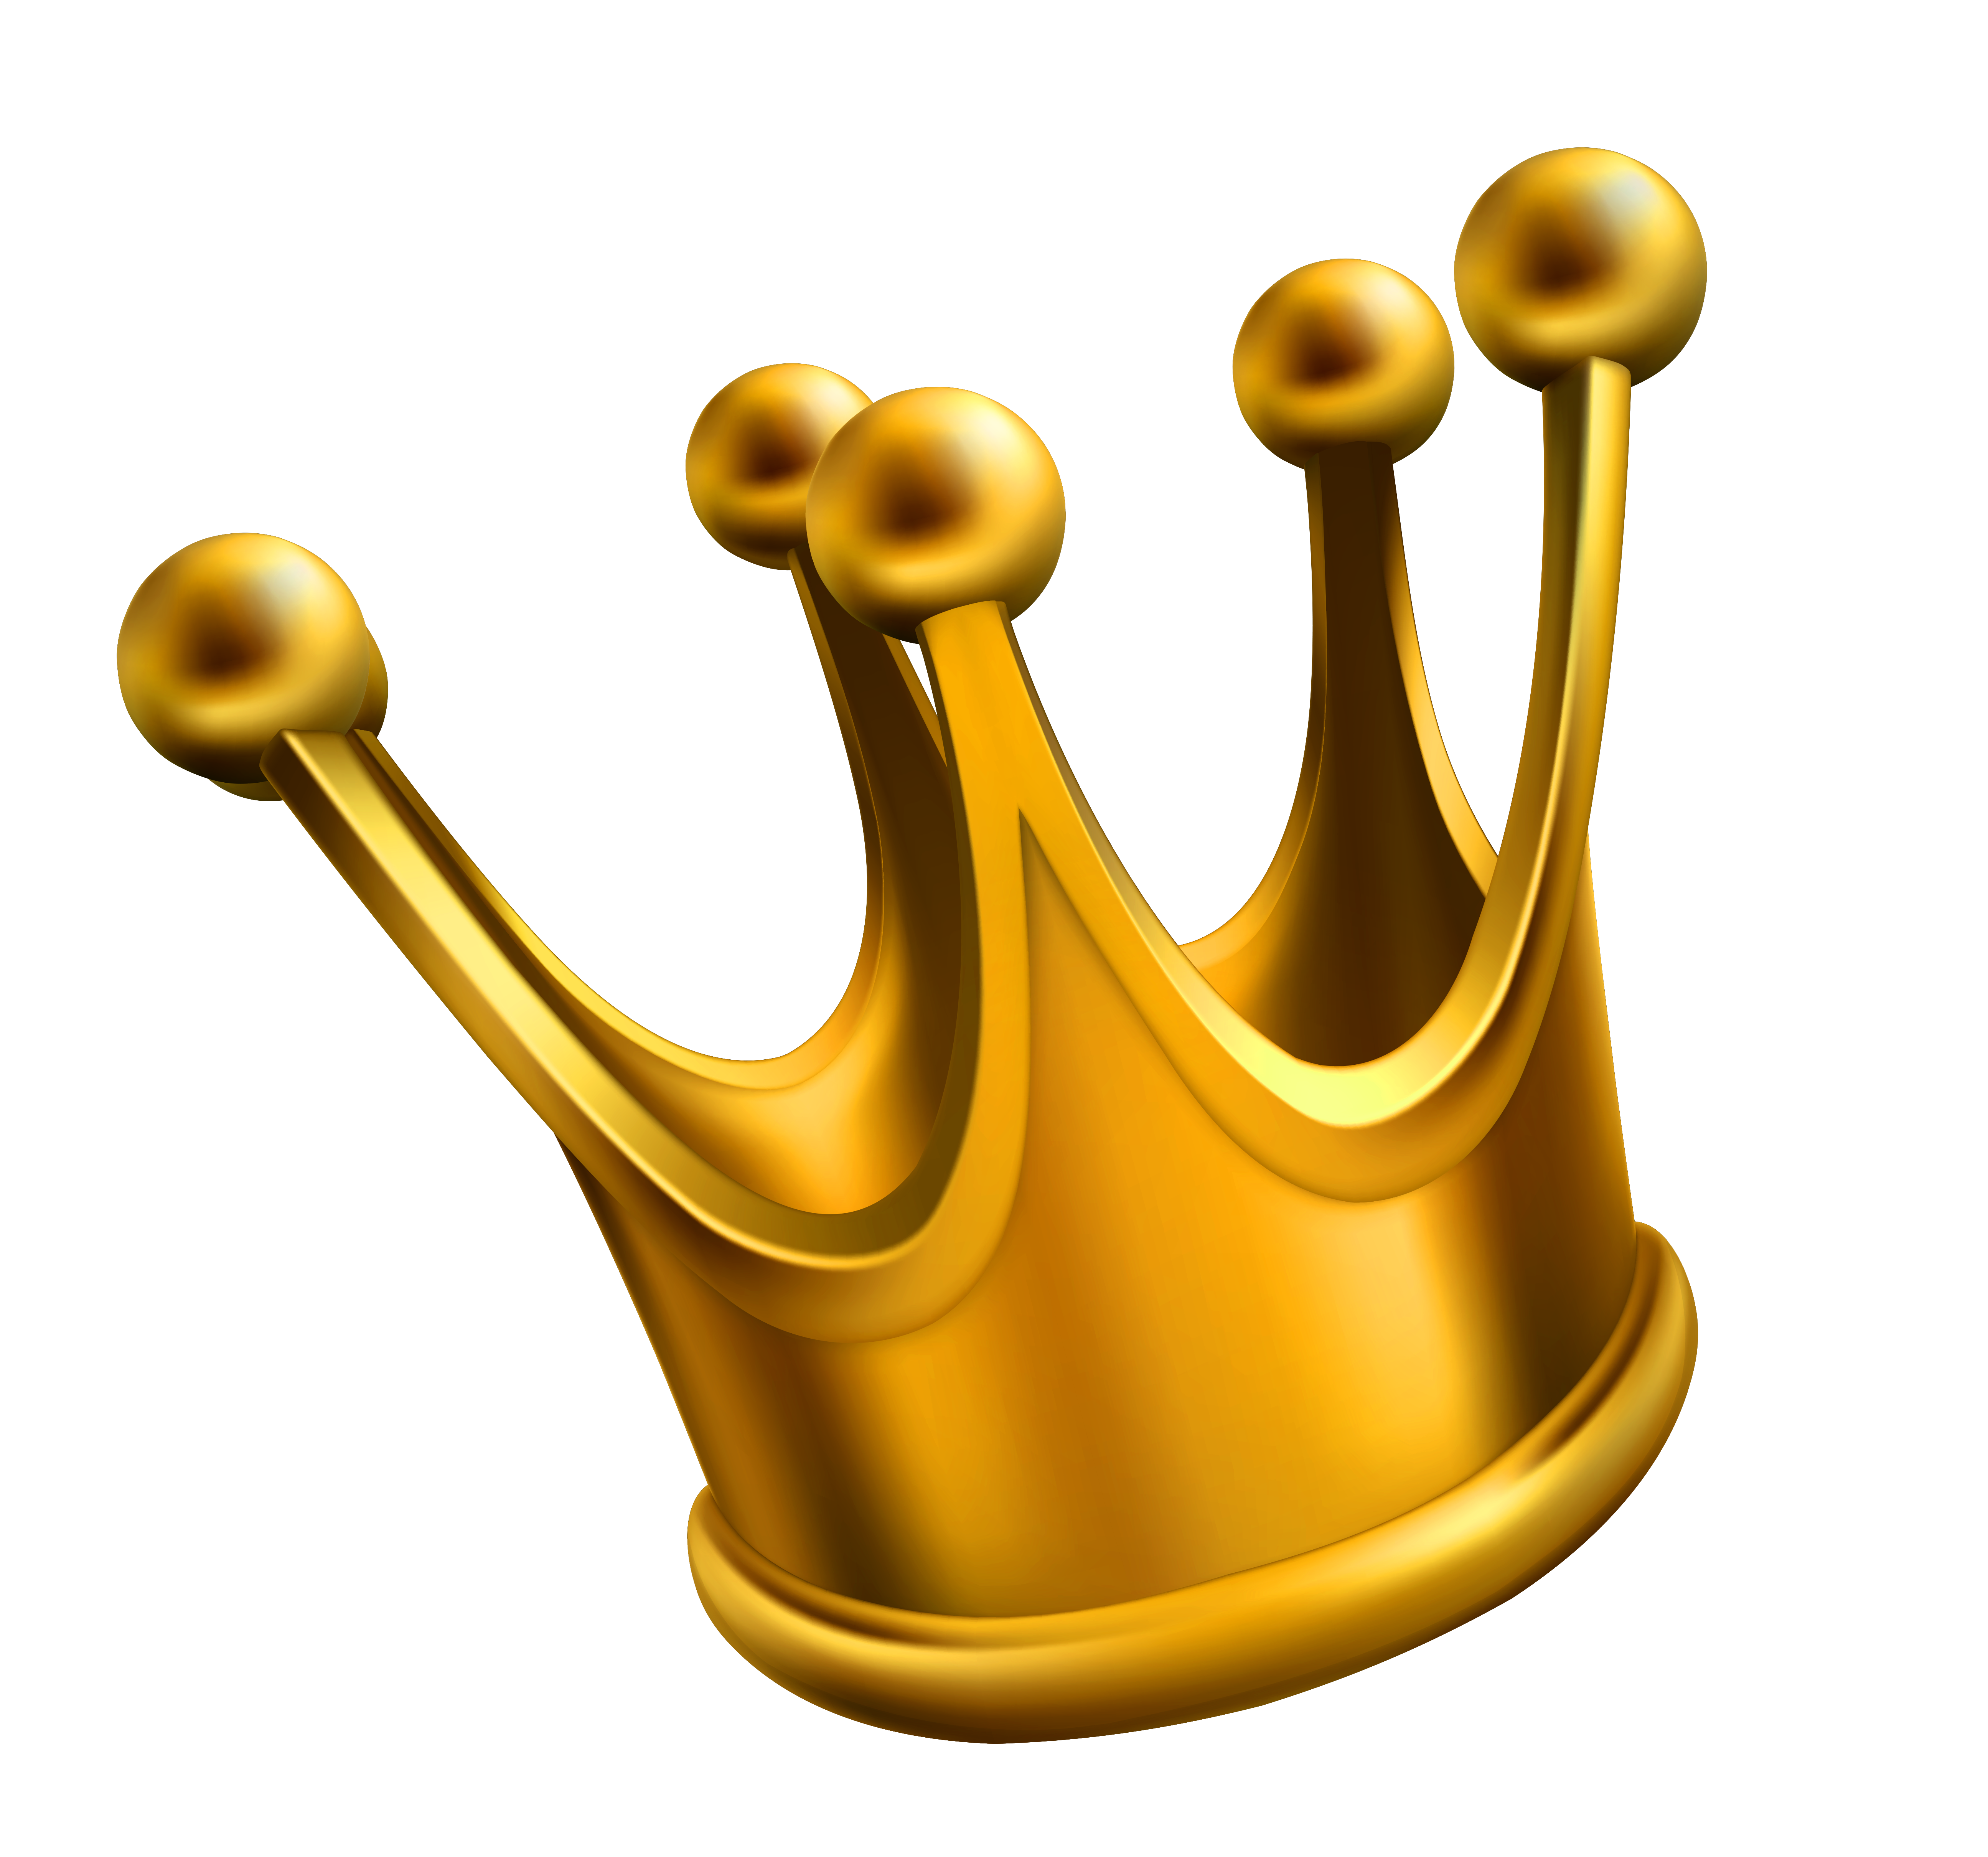 Simple Golden Crown Png image #29925